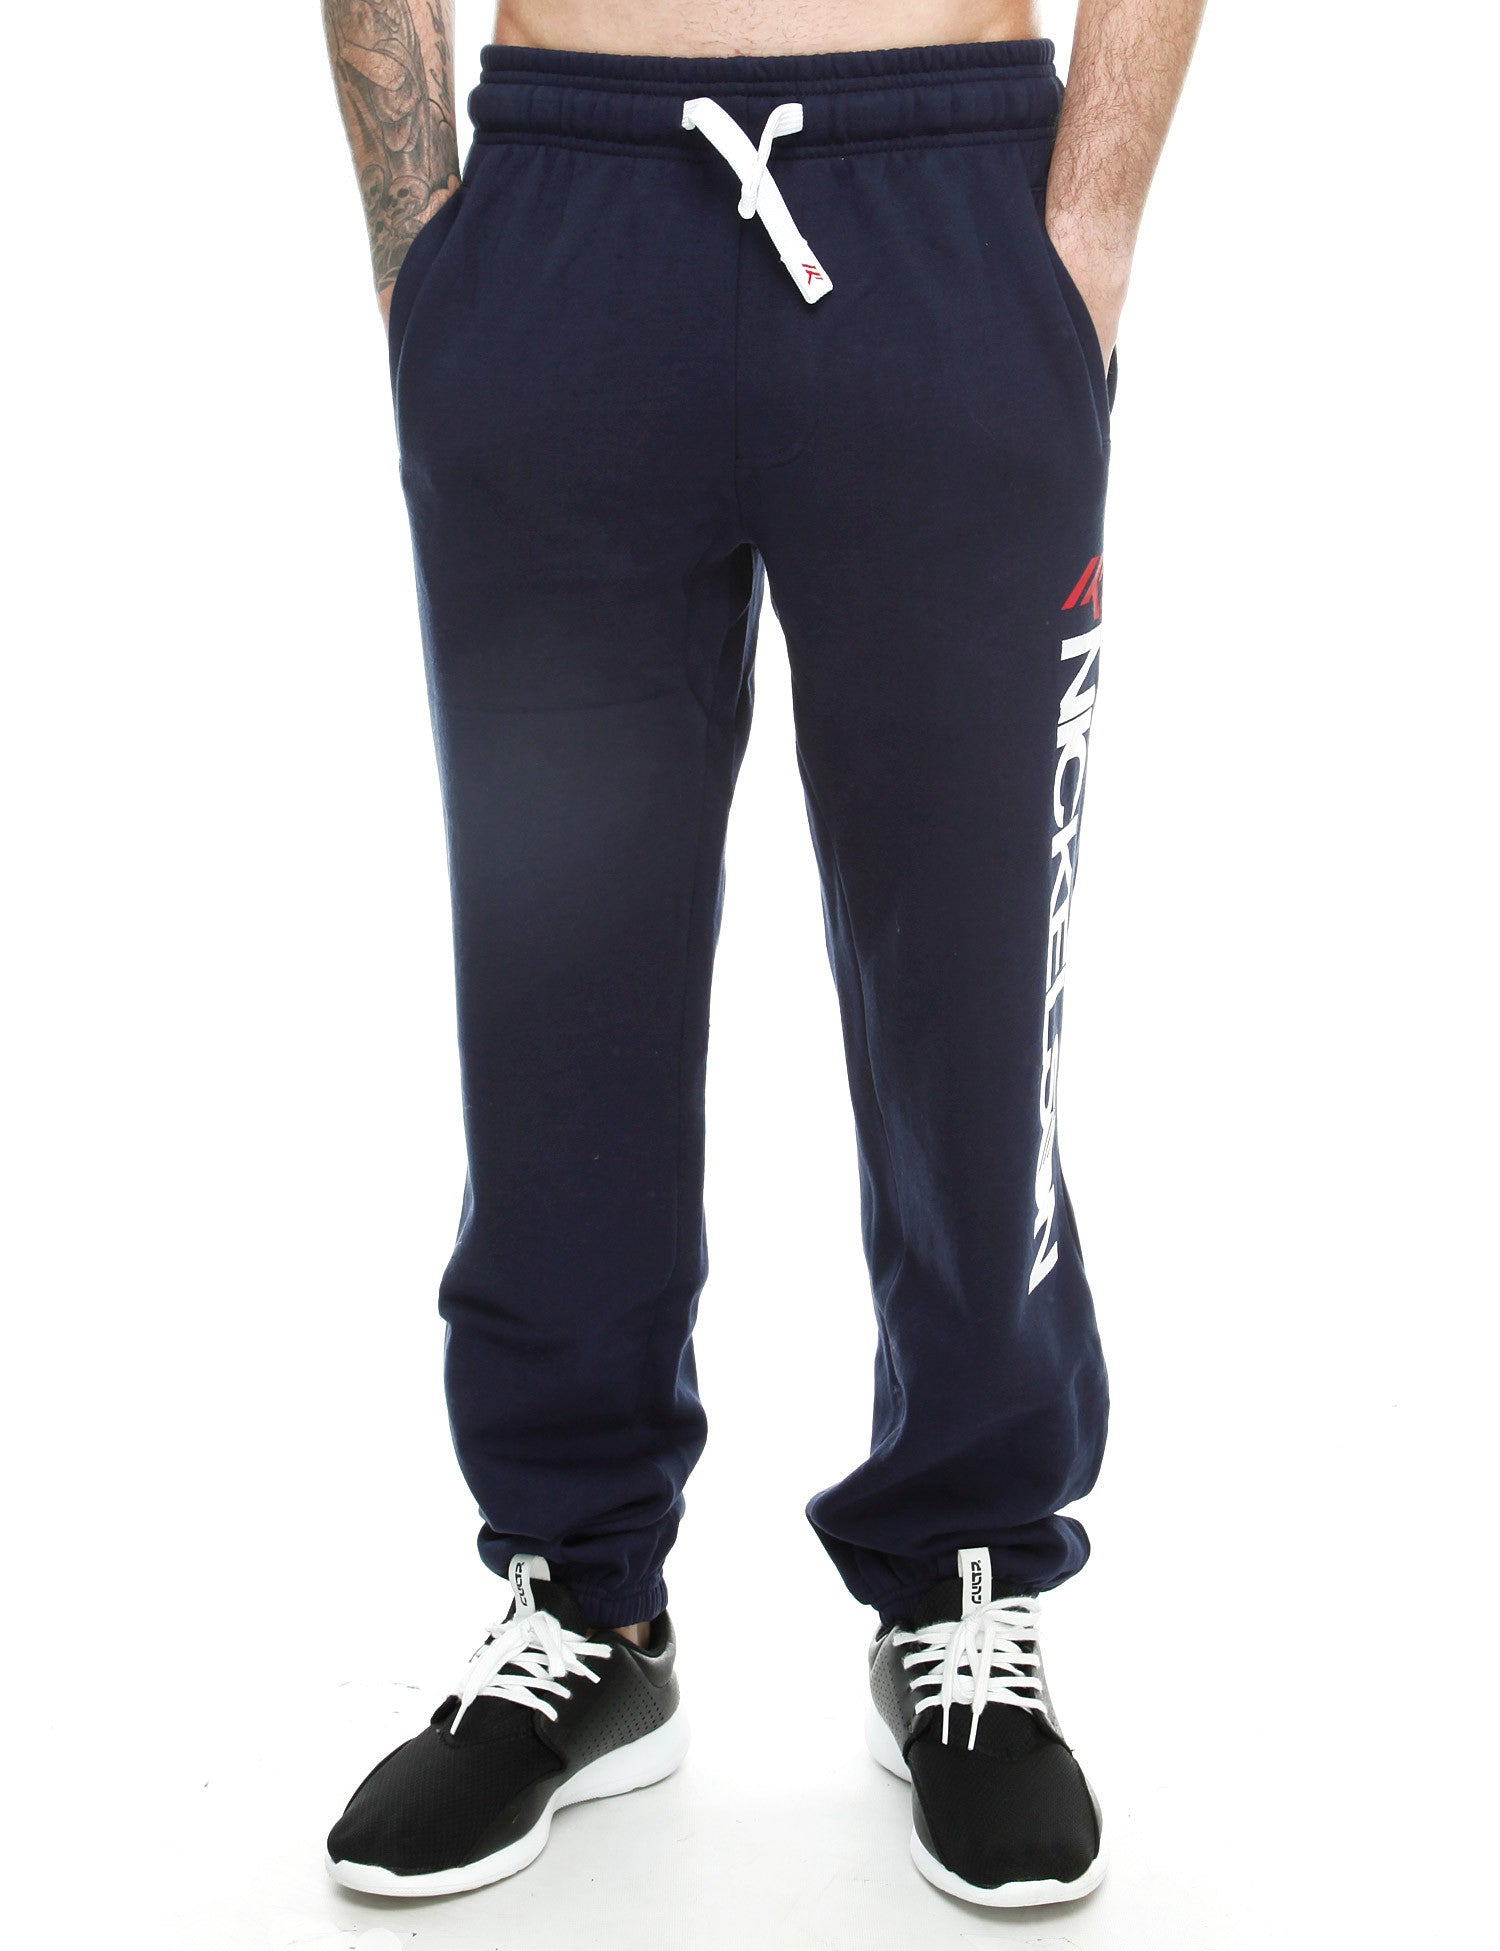 Nickleson Carbaby Sweatpant RSK00033  Navy